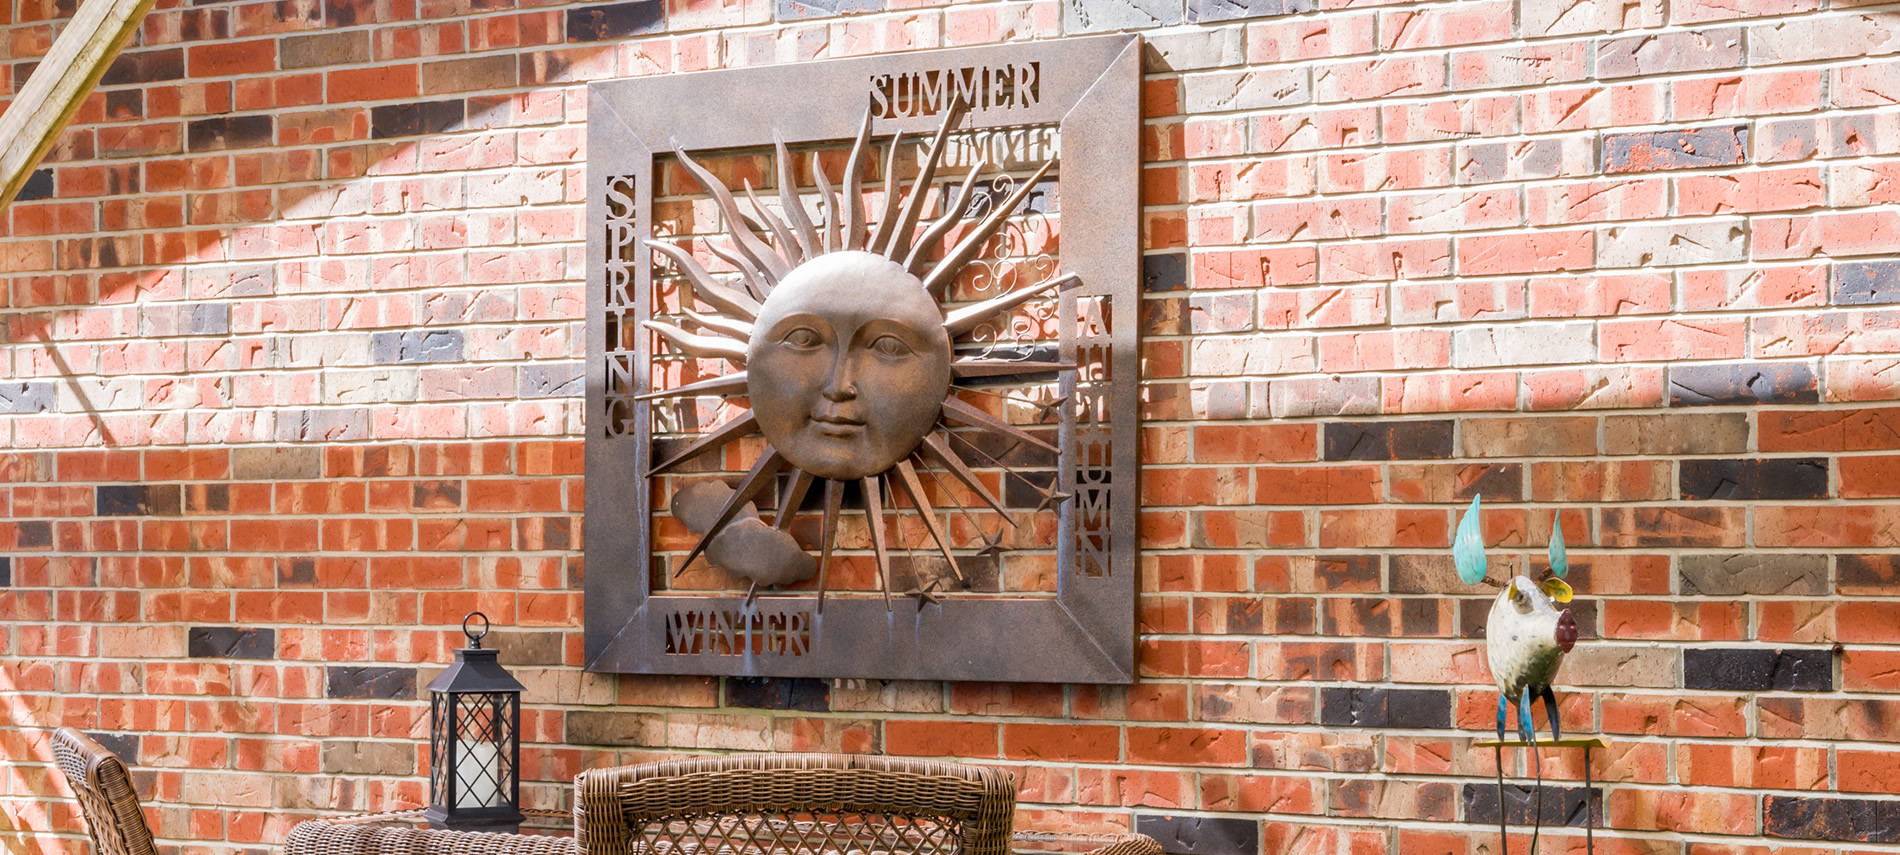 Red brick wall with metal sun hanging listing 4 seasons, wicker chairtops.